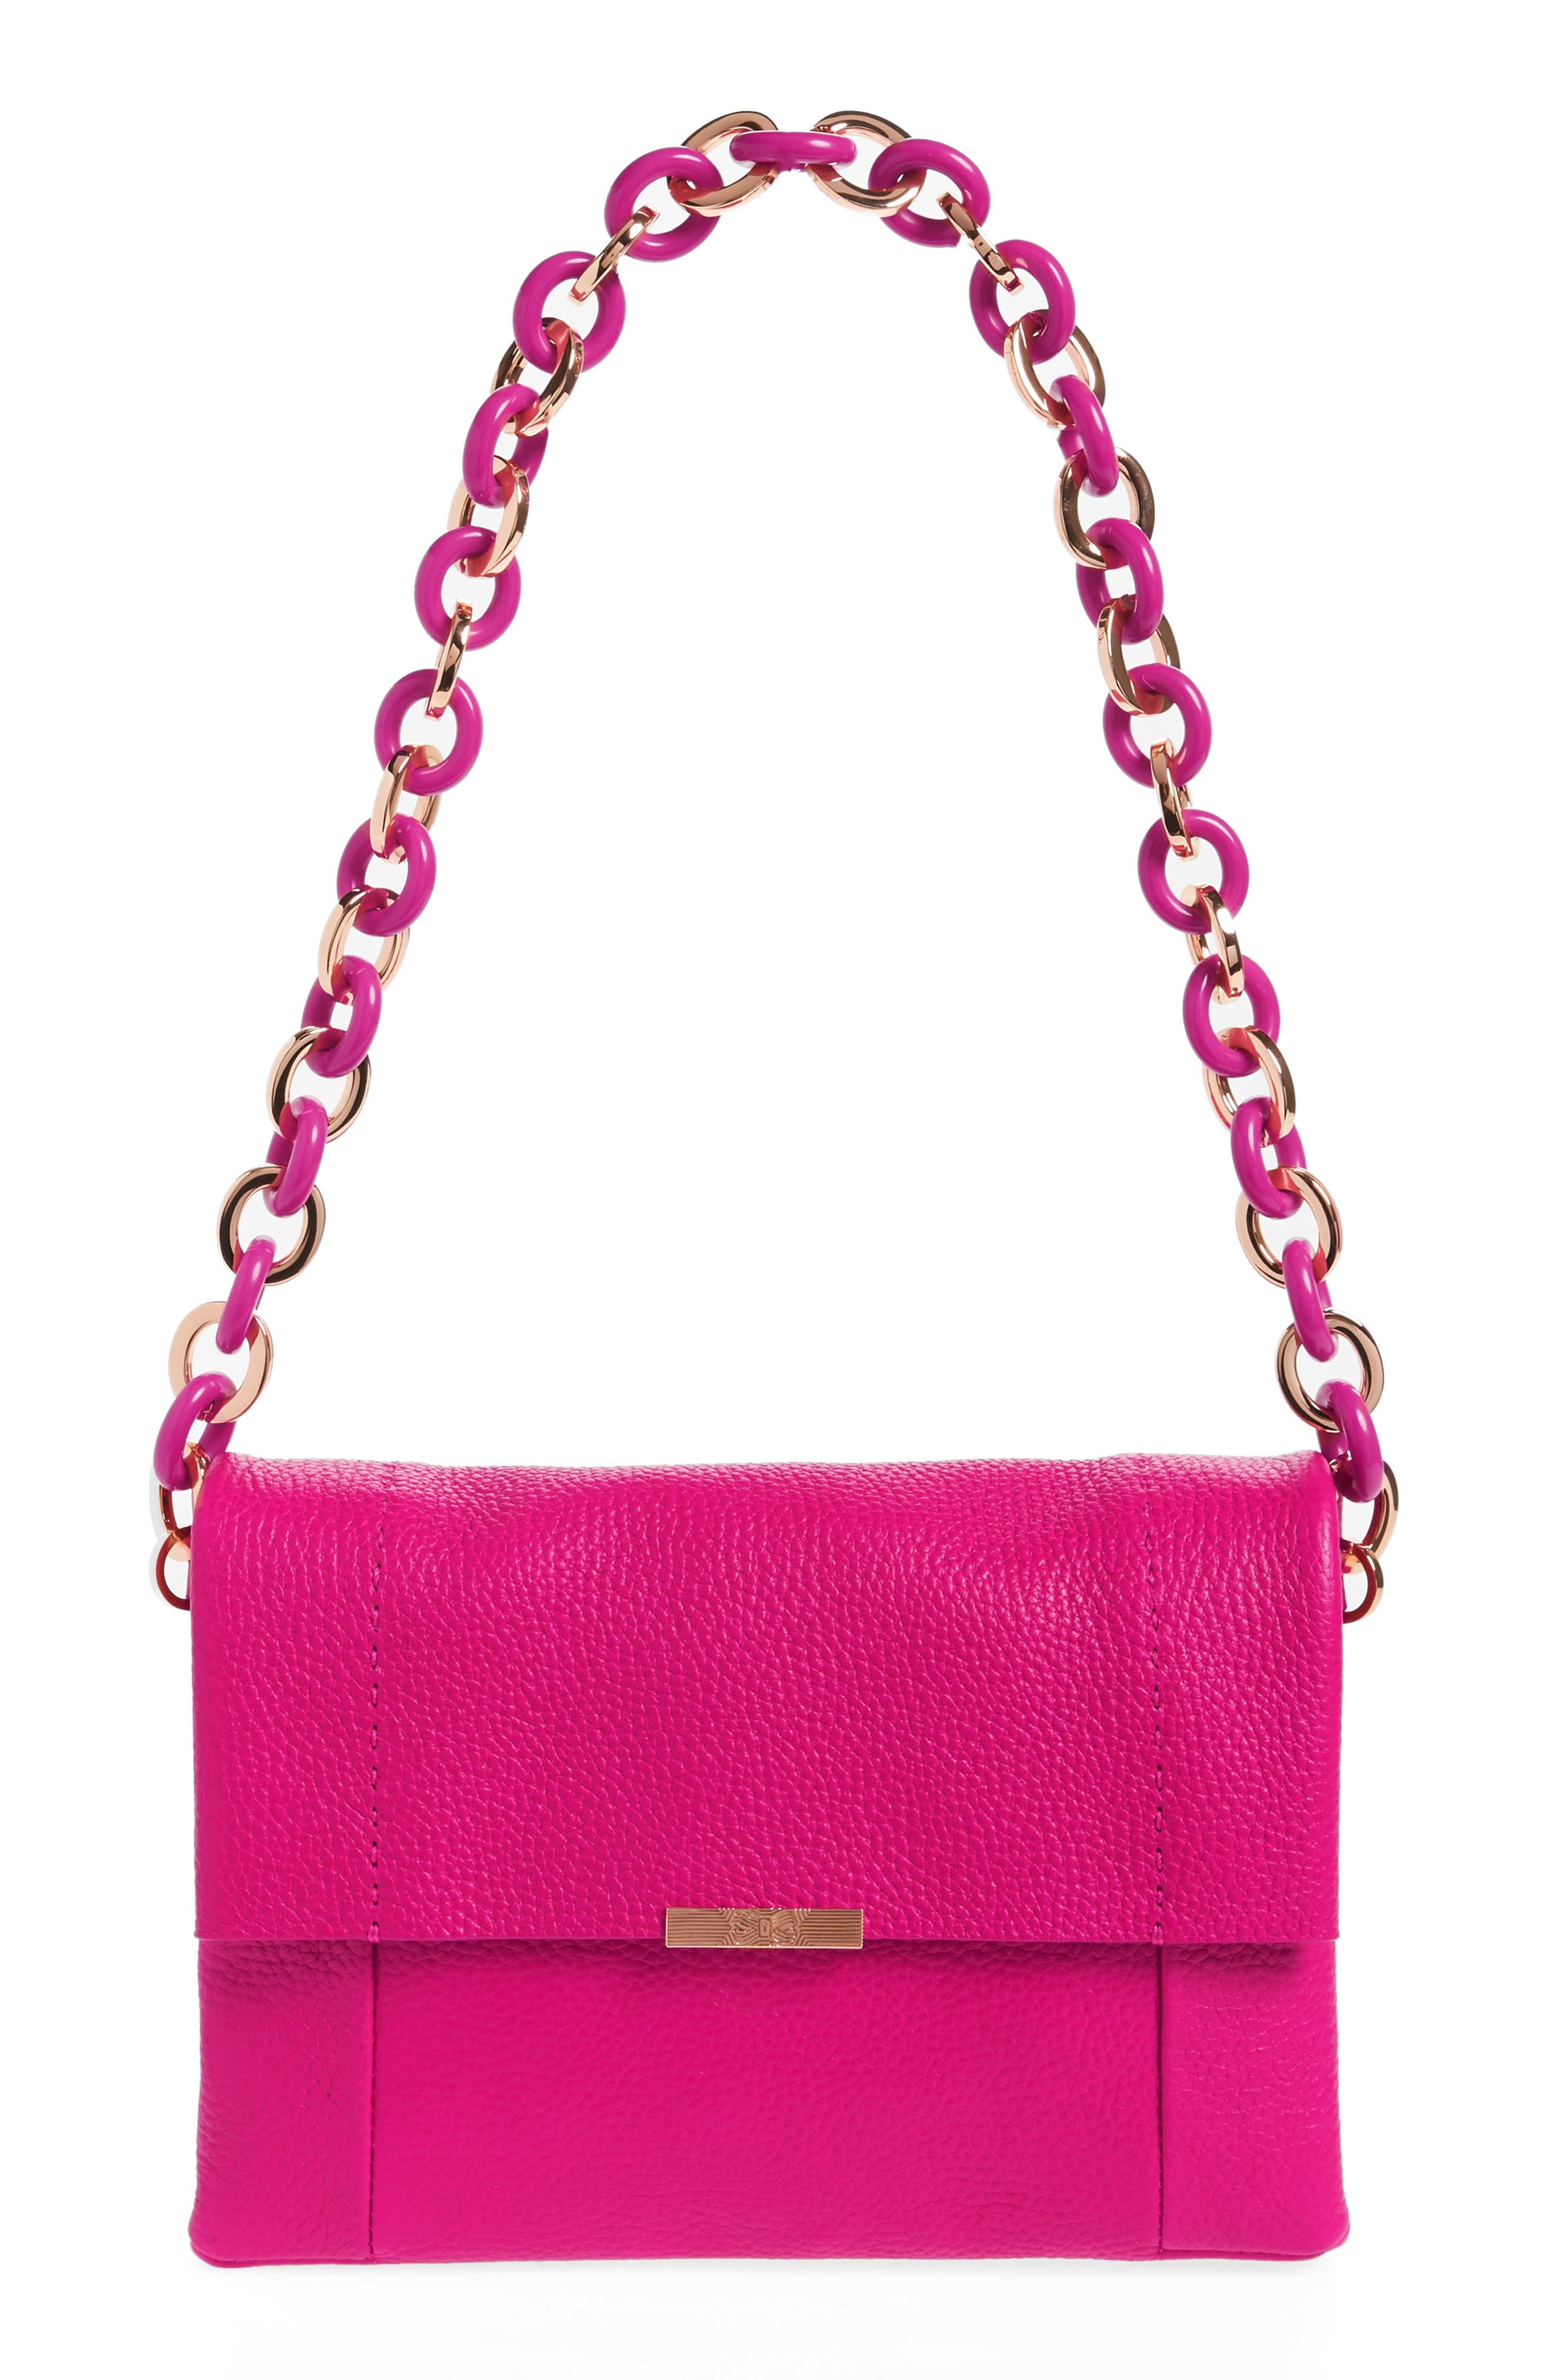 Ipomoea Leather Shoulder Bag,                             Main thumbnail 1, color,                             FUCHSIA